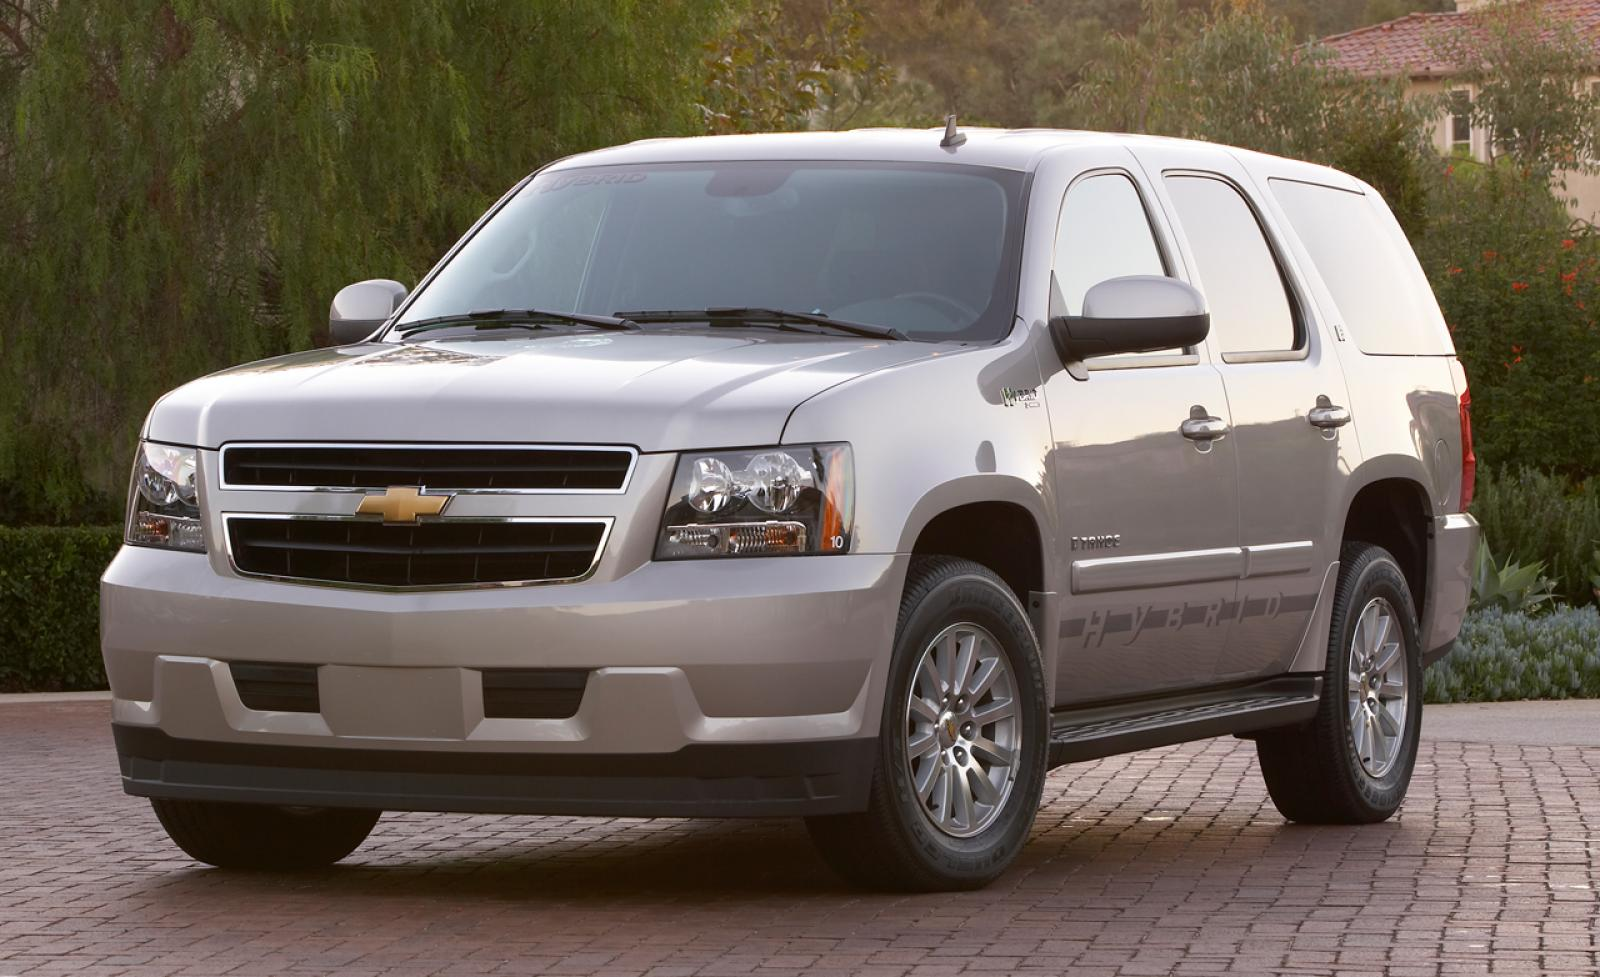 2008 chevrolet tahoe hybrid information and photos zombiedrive. Cars Review. Best American Auto & Cars Review